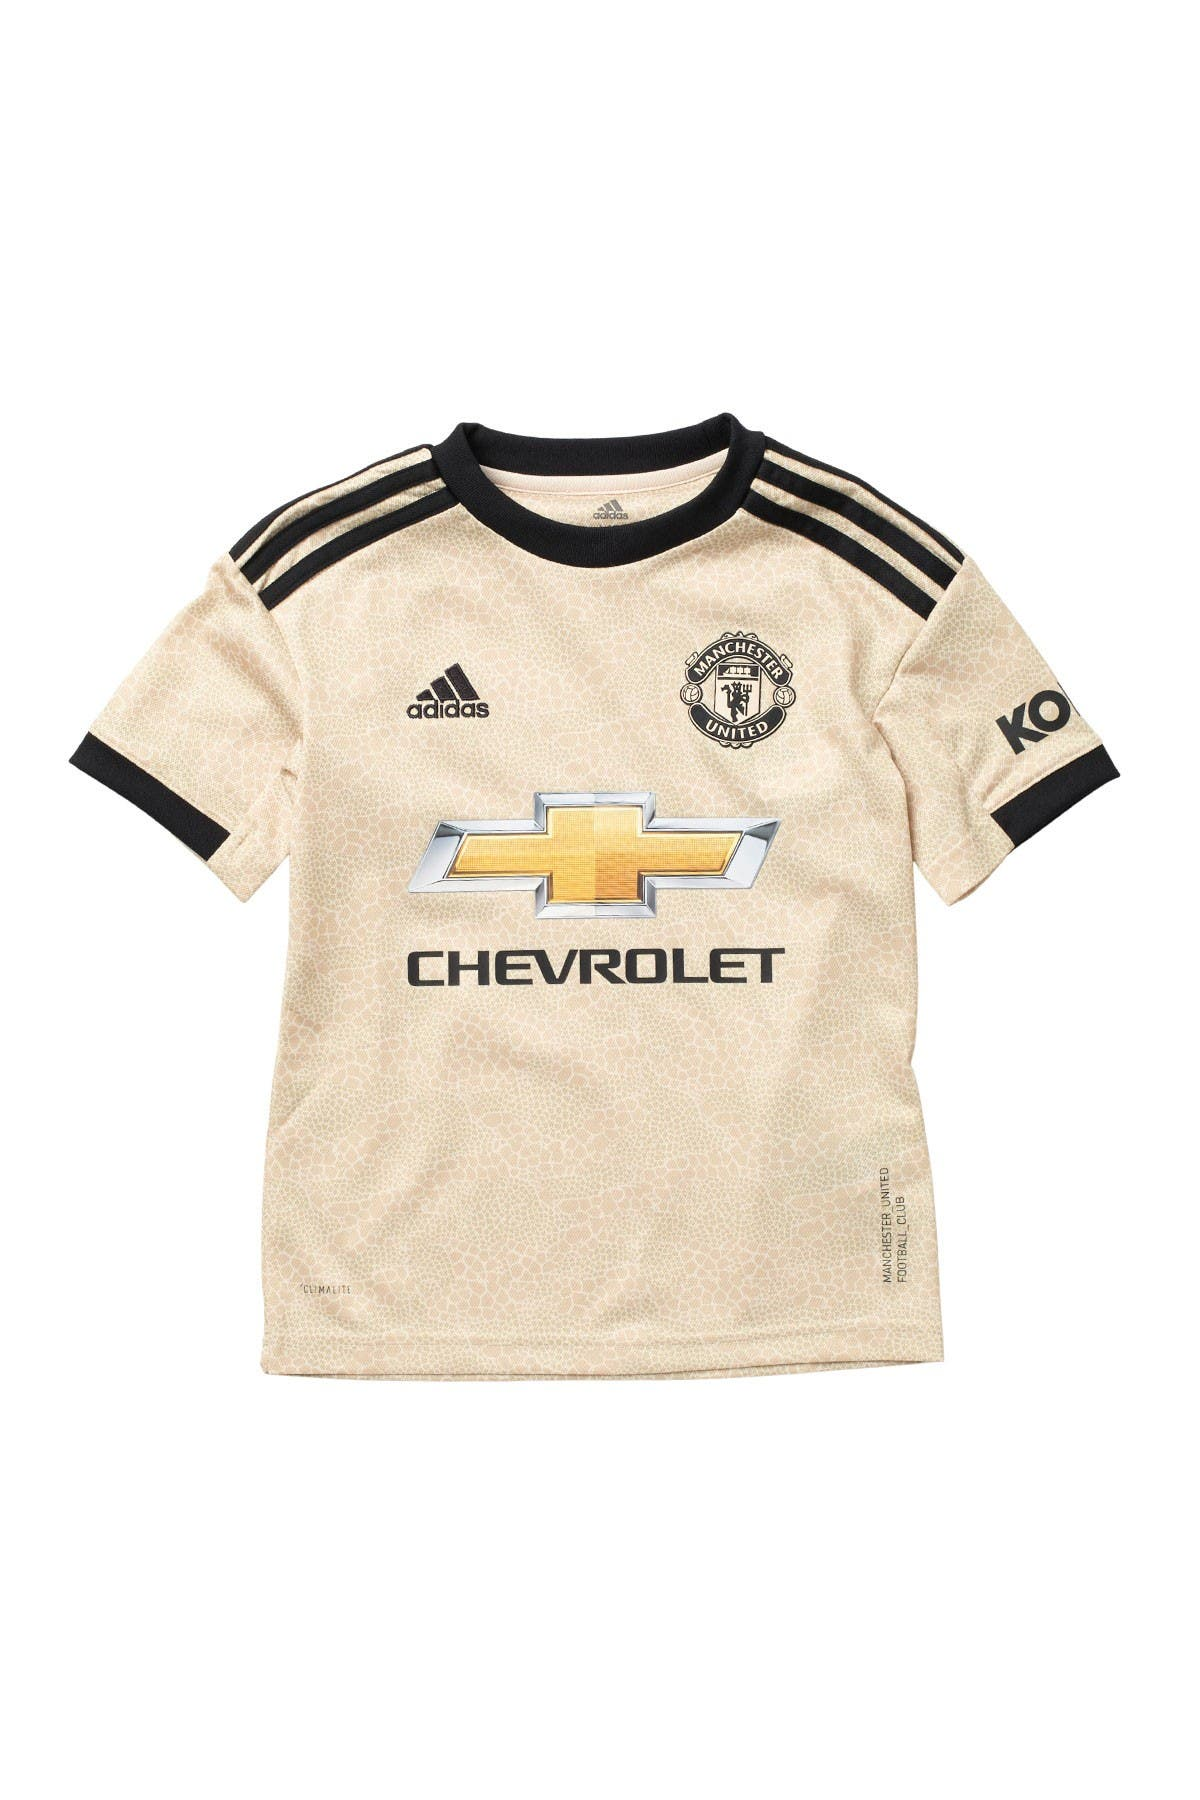 Image of ADIDAS ORIGINALS Manchester United Soccer Jersey